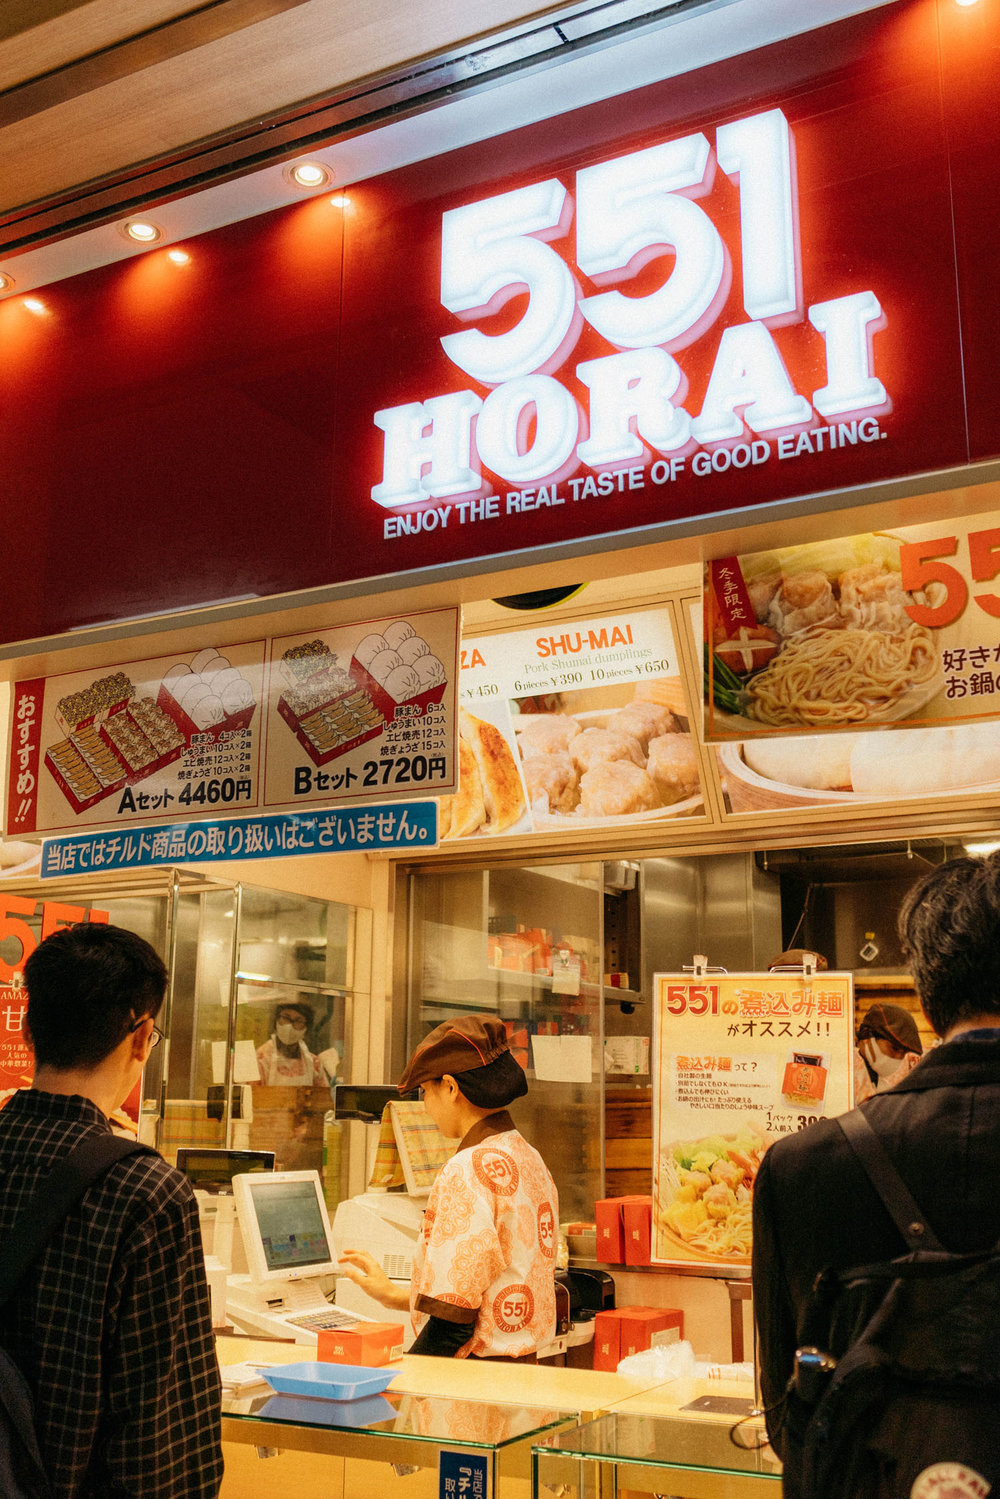 Picking up snacks for the train ride from  551 Horai  (at Kyoto Station). Originally from Osaka, these were legit the best pork buns I have tasted in my entire life.